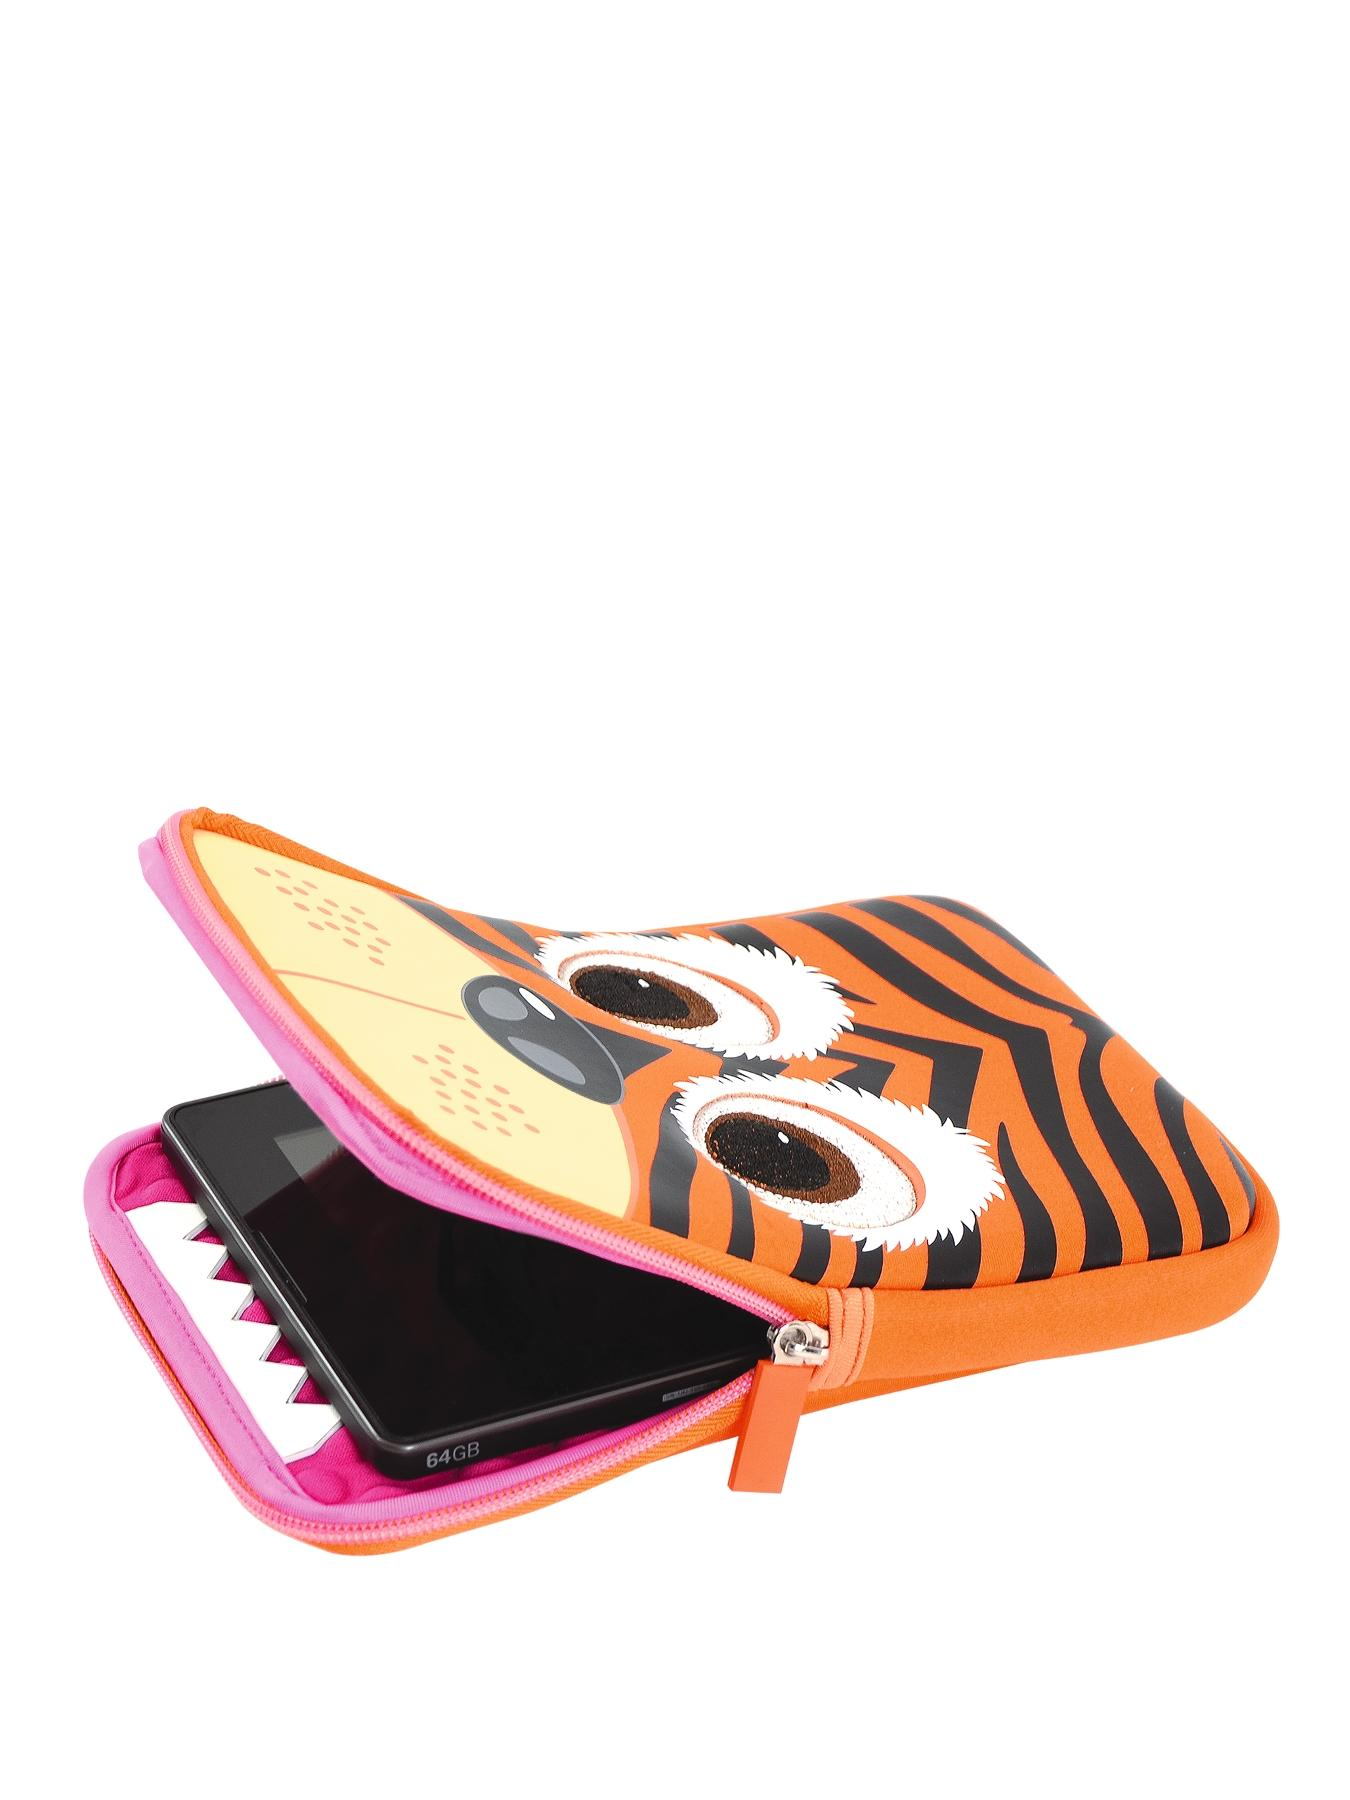 Universal 10 Inch Character Tablet Stand Case - Tiger